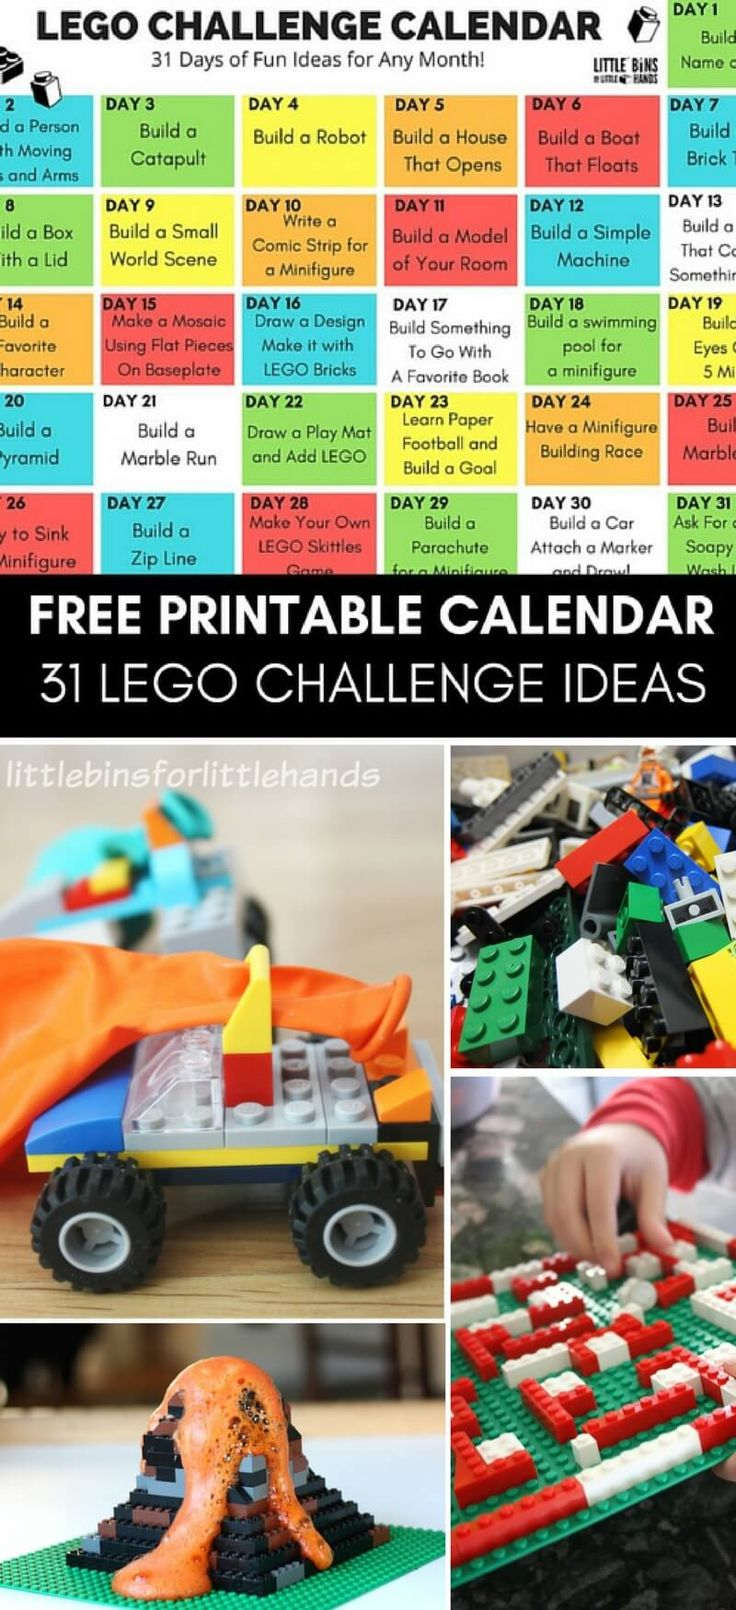 Free Printable LEGO Challenge Calendar for kids! Our 31 Day LEGO Calendar is filled with fun LEGO learning activities, LEGO STEM challenges, and cool ideas for building with LEGO. Use all year round or check out our seasonal LEGO activities and Christmas LEGO Advent Calendar!